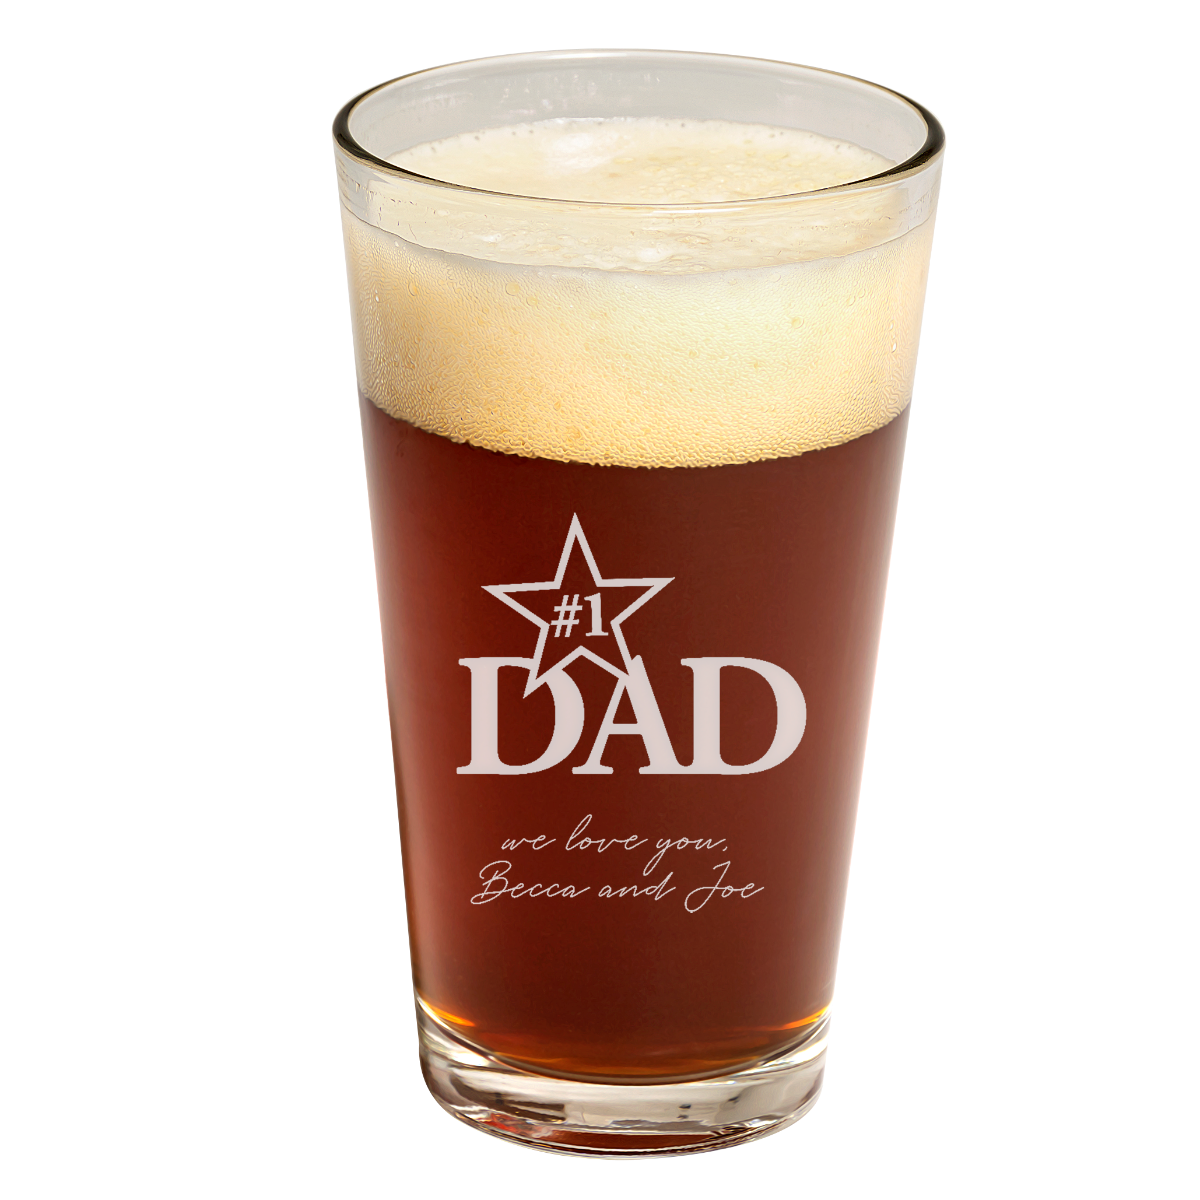 Father's Day #1 Dad Pint Glass